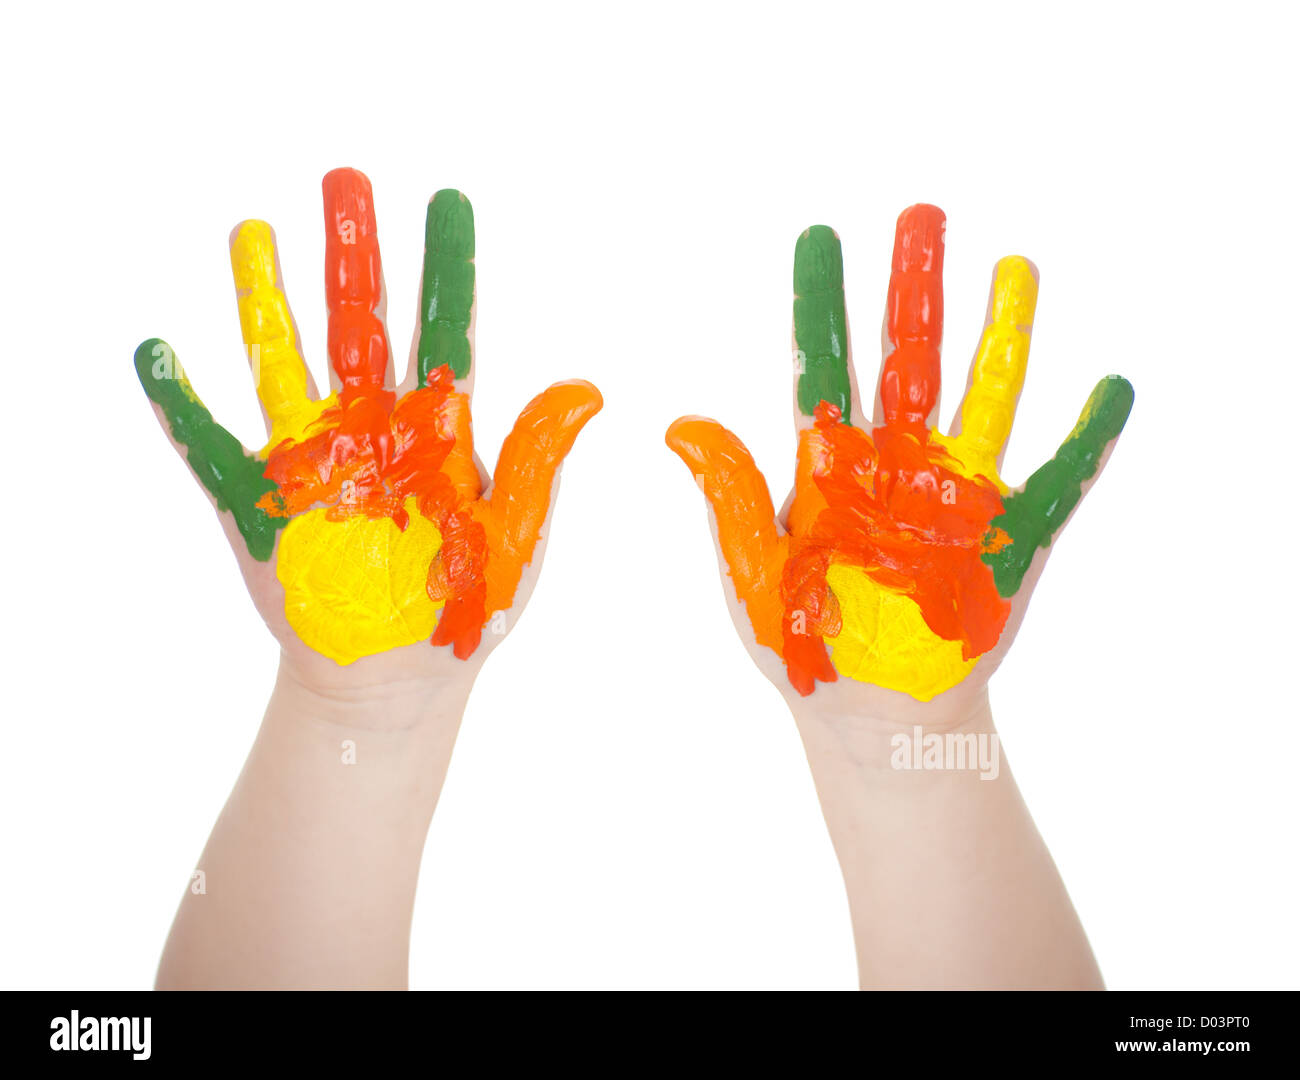 Kid's hands painted in bright colors isolated on white - Stock Image